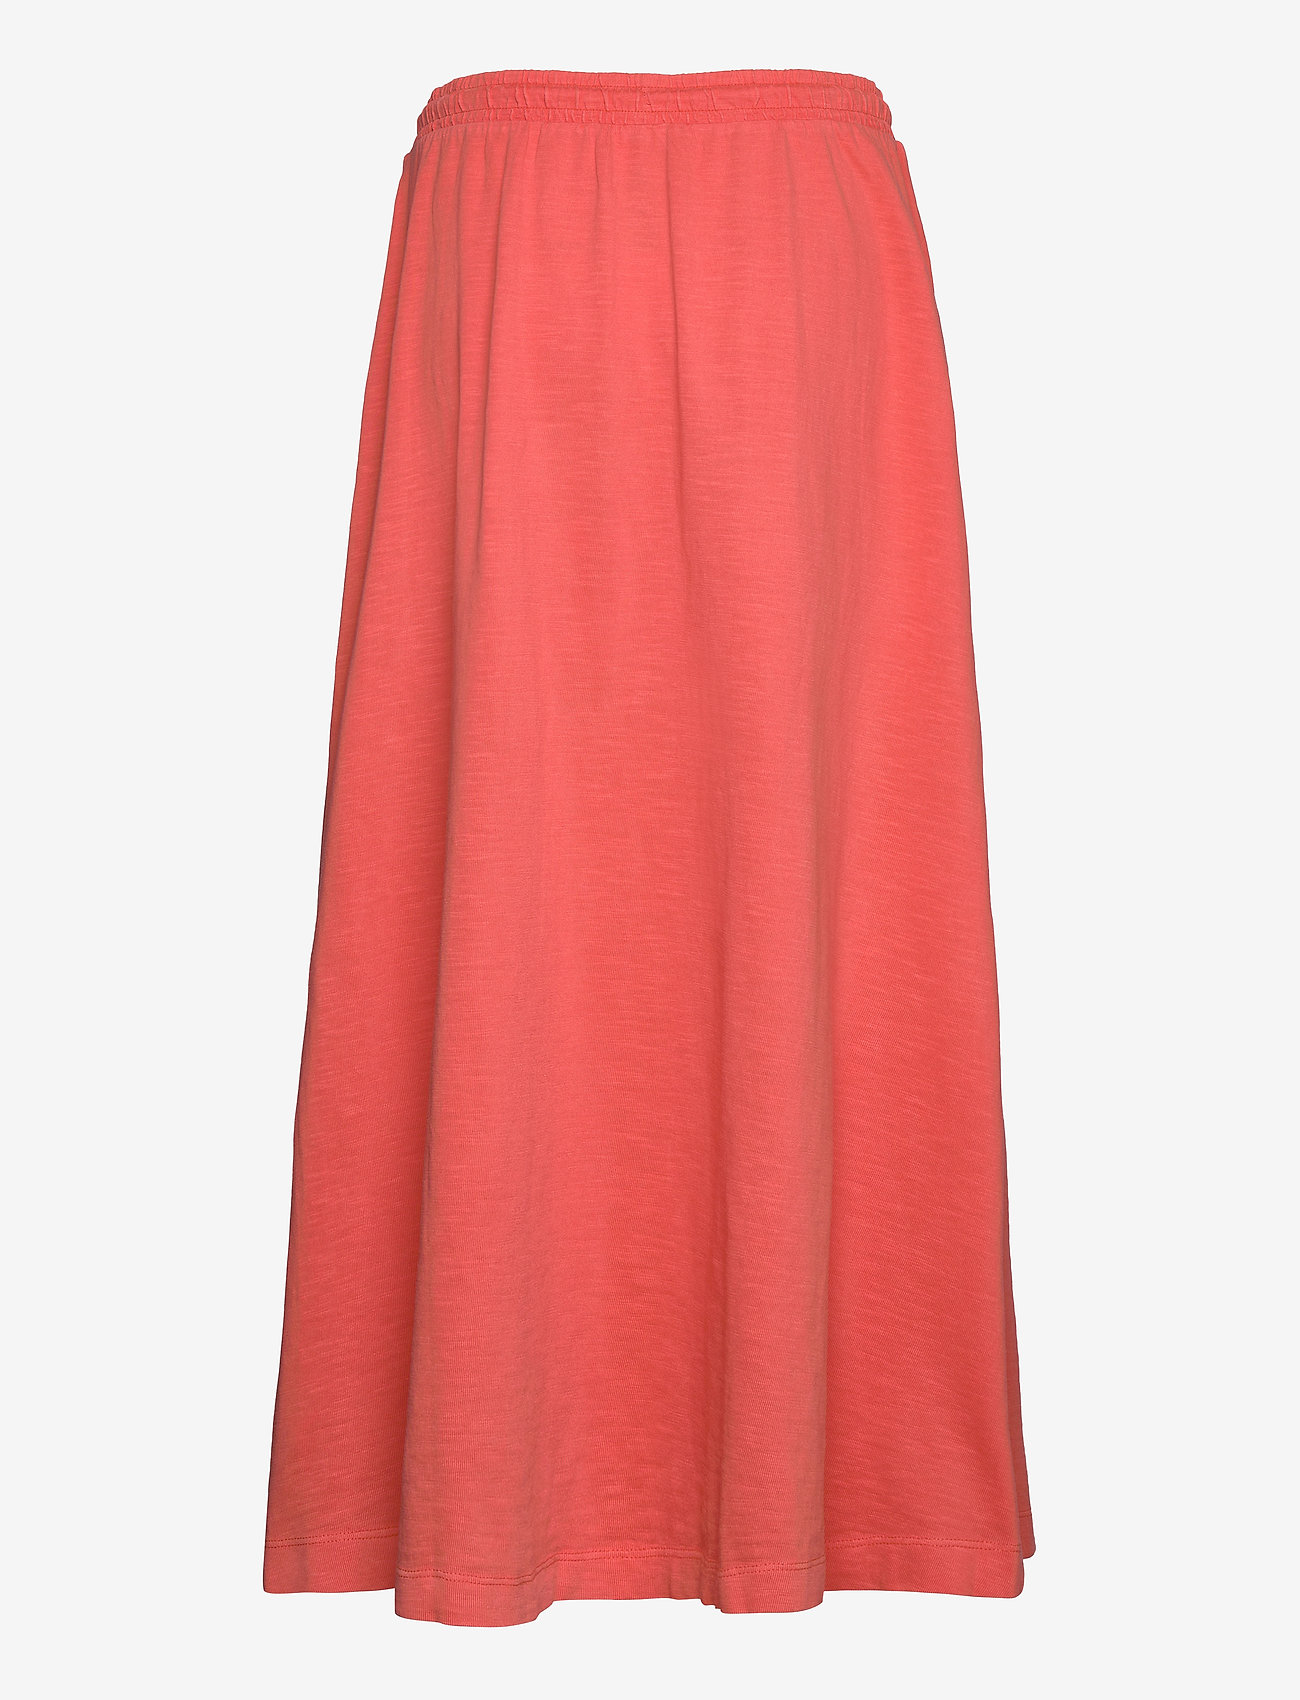 Skirts Knitted (Coral 4) (349.99 kr) - Esprit Casual